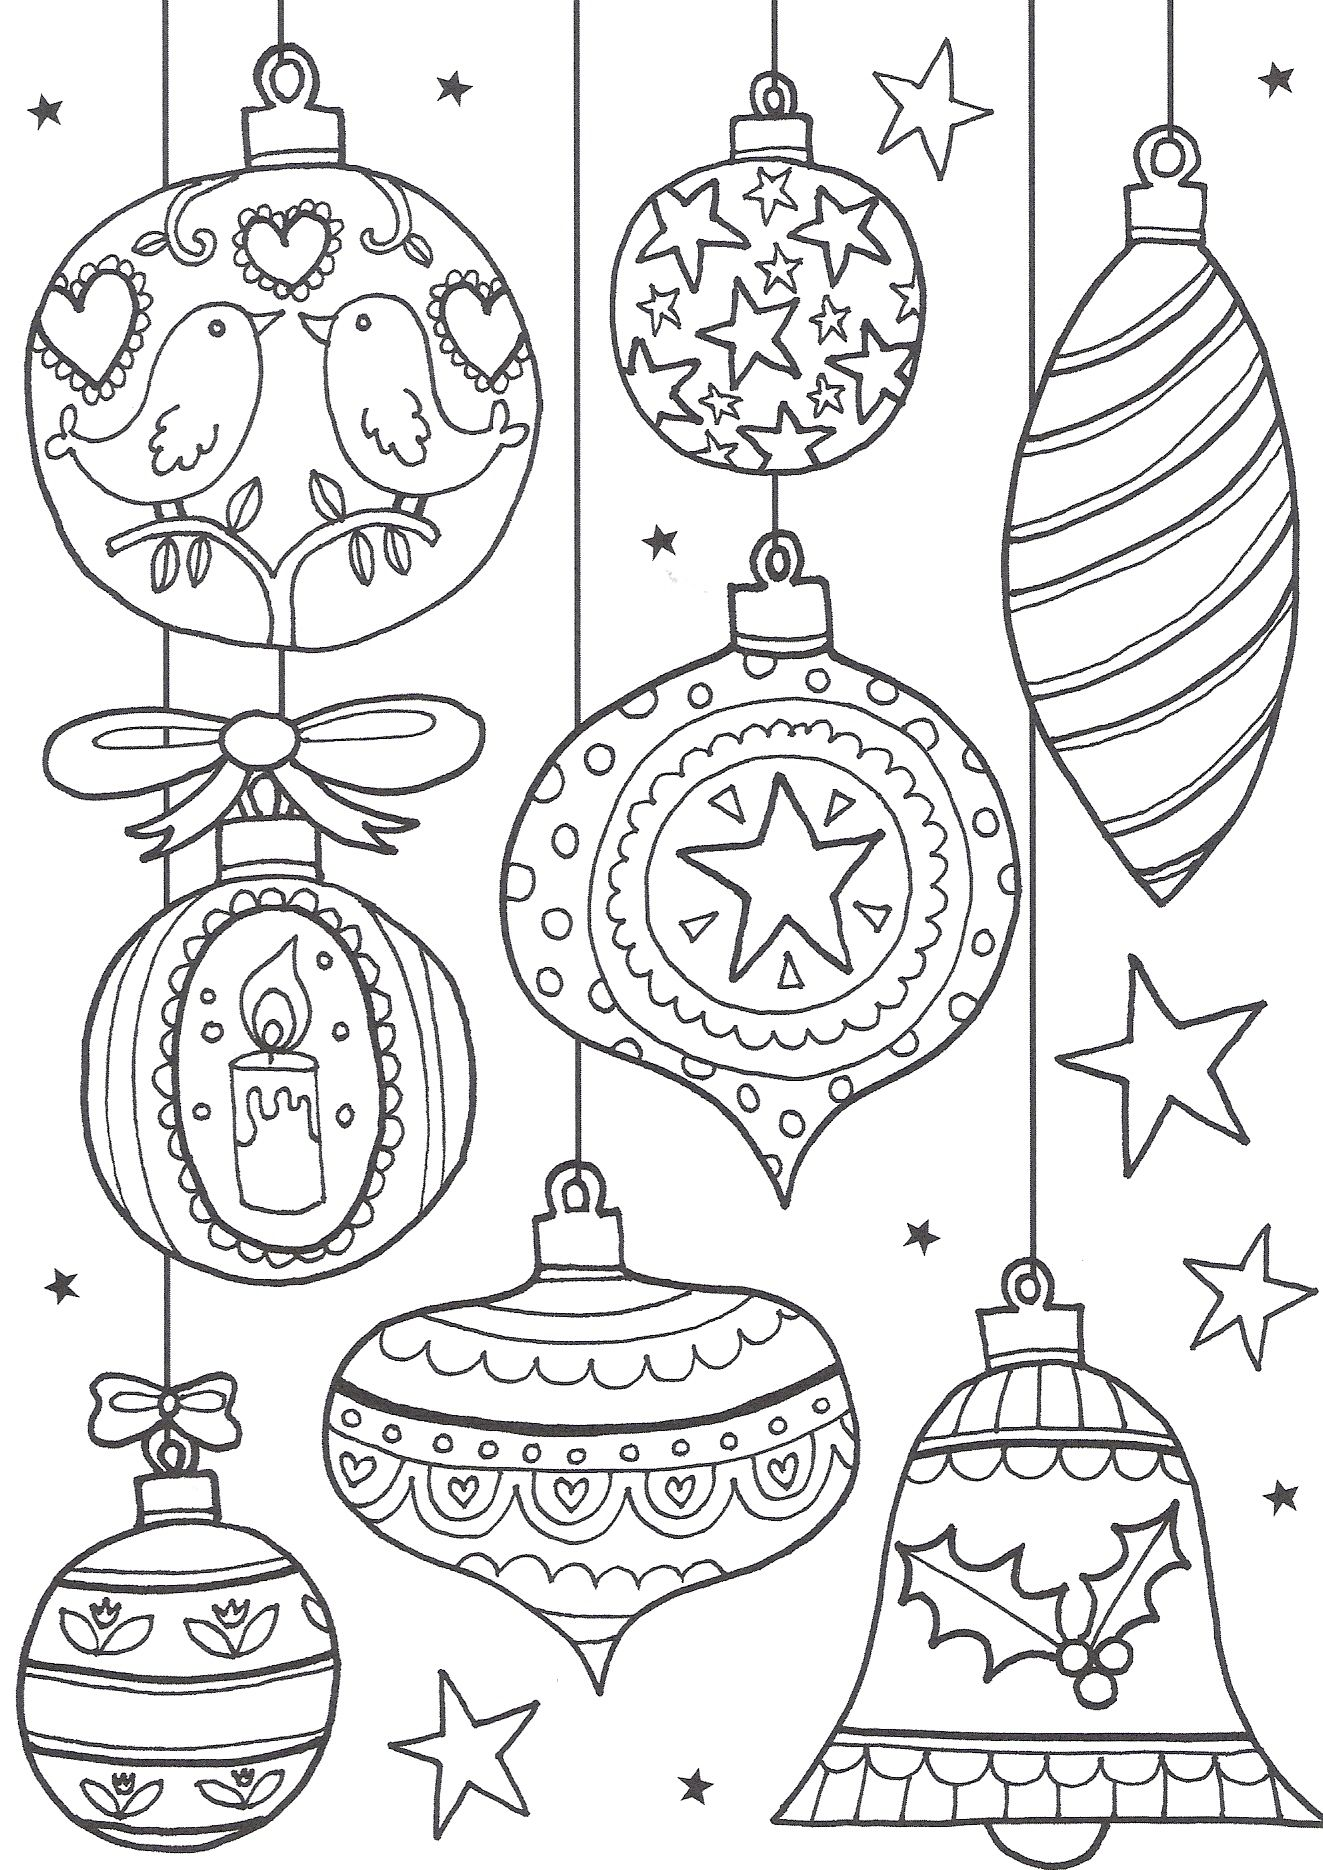 Free christmas colouring pages for adults the ultimate for Adult christmas coloring pages